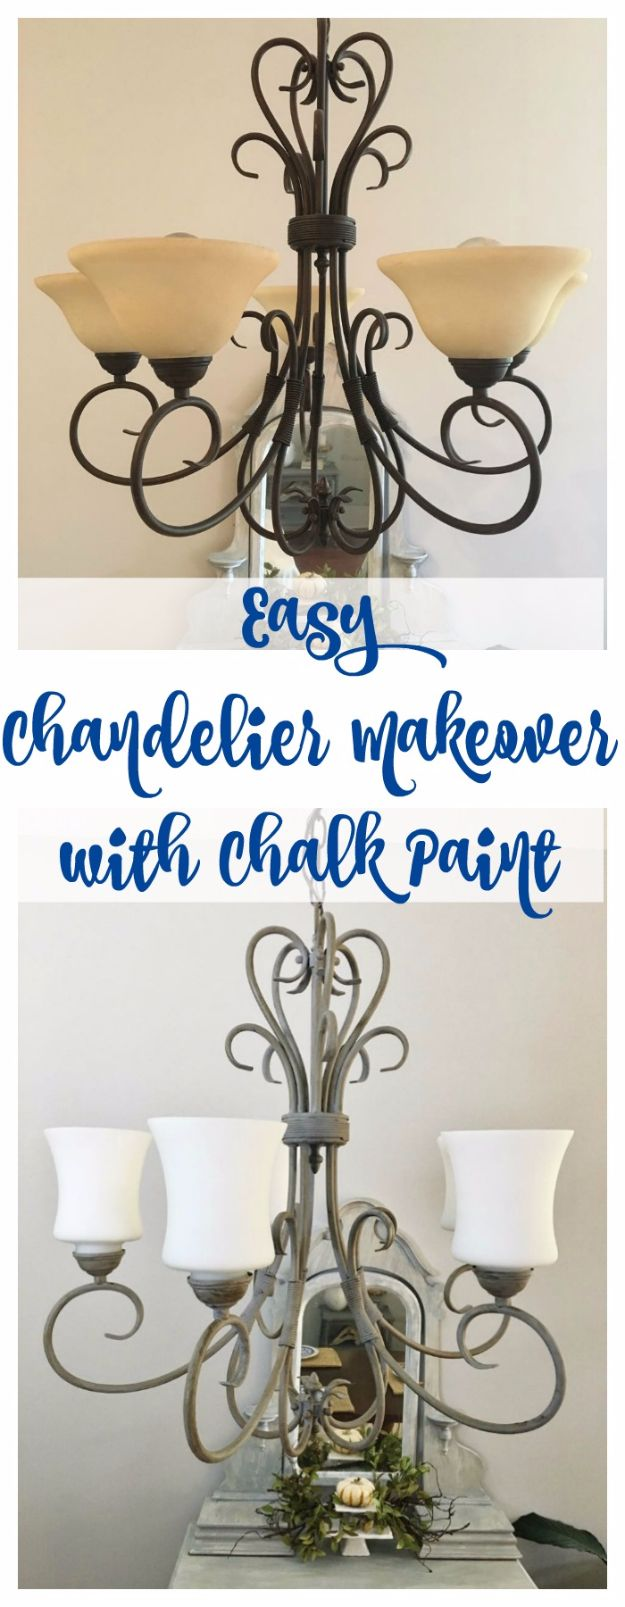 DIY Chandelier Makeovers - Chandelier Makeover with Chalk Paint - Easy Ideas for Old Brass, Crystal and Ugly Gold Chandelier Makeover - Cool Before and After Projects for Chandeliers - Farmhouse, Shabby Chic and Vintage Home Decor on A Budget - Living Room, Bedroom and Dining Room Idea DIY Joy Projects and Crafts http://diyjoy.com/diy-chandelier-makeovers